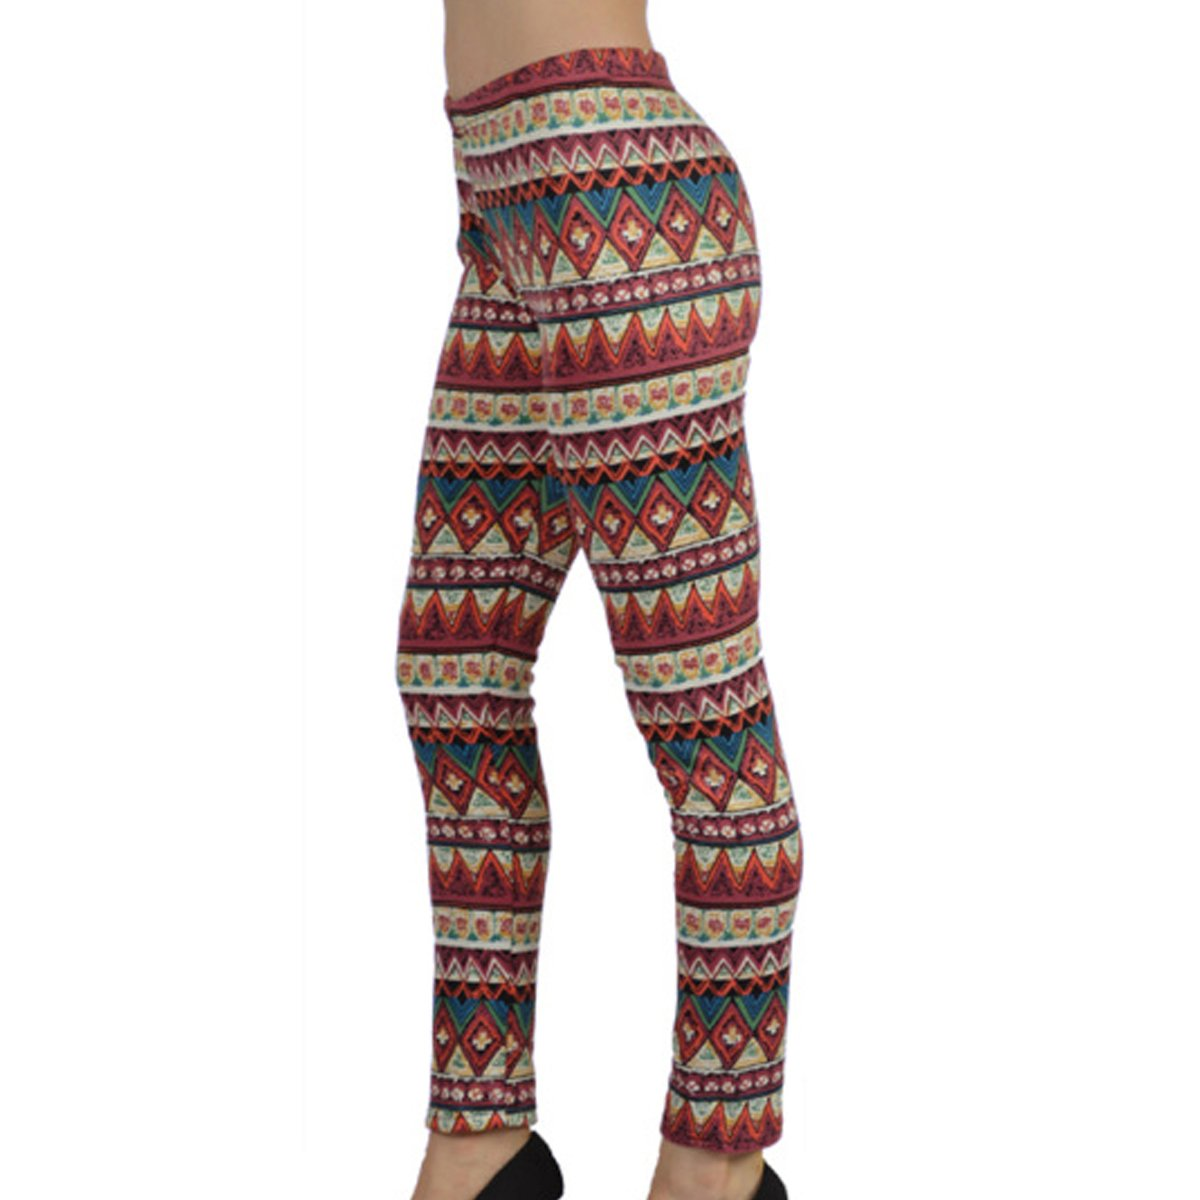 c7a05fabafc Amazon.com  Fleece Lined Leggings for Women - High Waist Stretchable Pants  - Thermal Compression Full Length Tights - Multi-Style Nordic Snow Flake  Reindeer ...